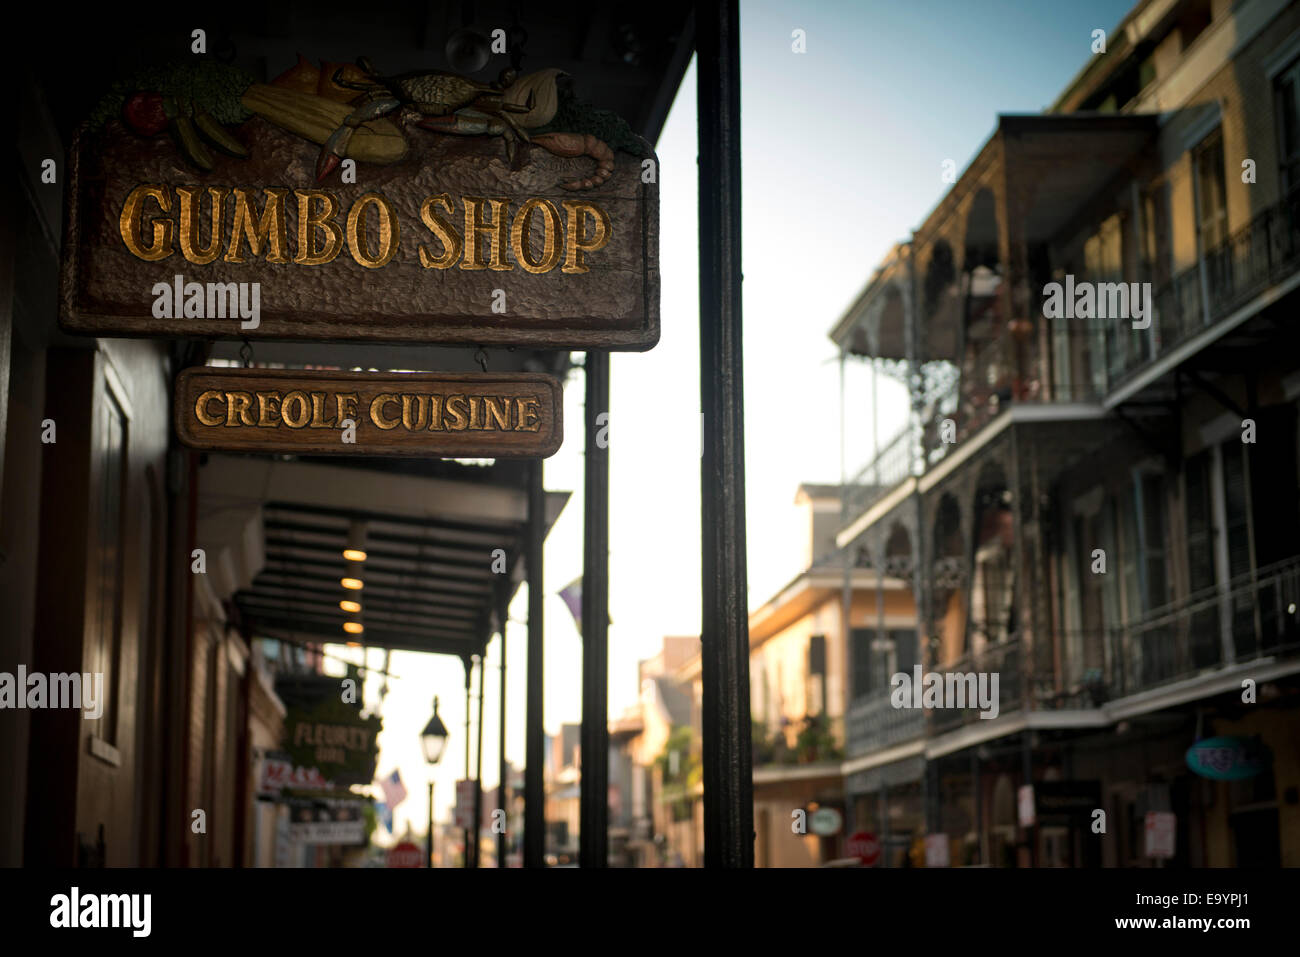 Gumbo shop. French Quarter. New Orleans, Louisiana - Stock Image